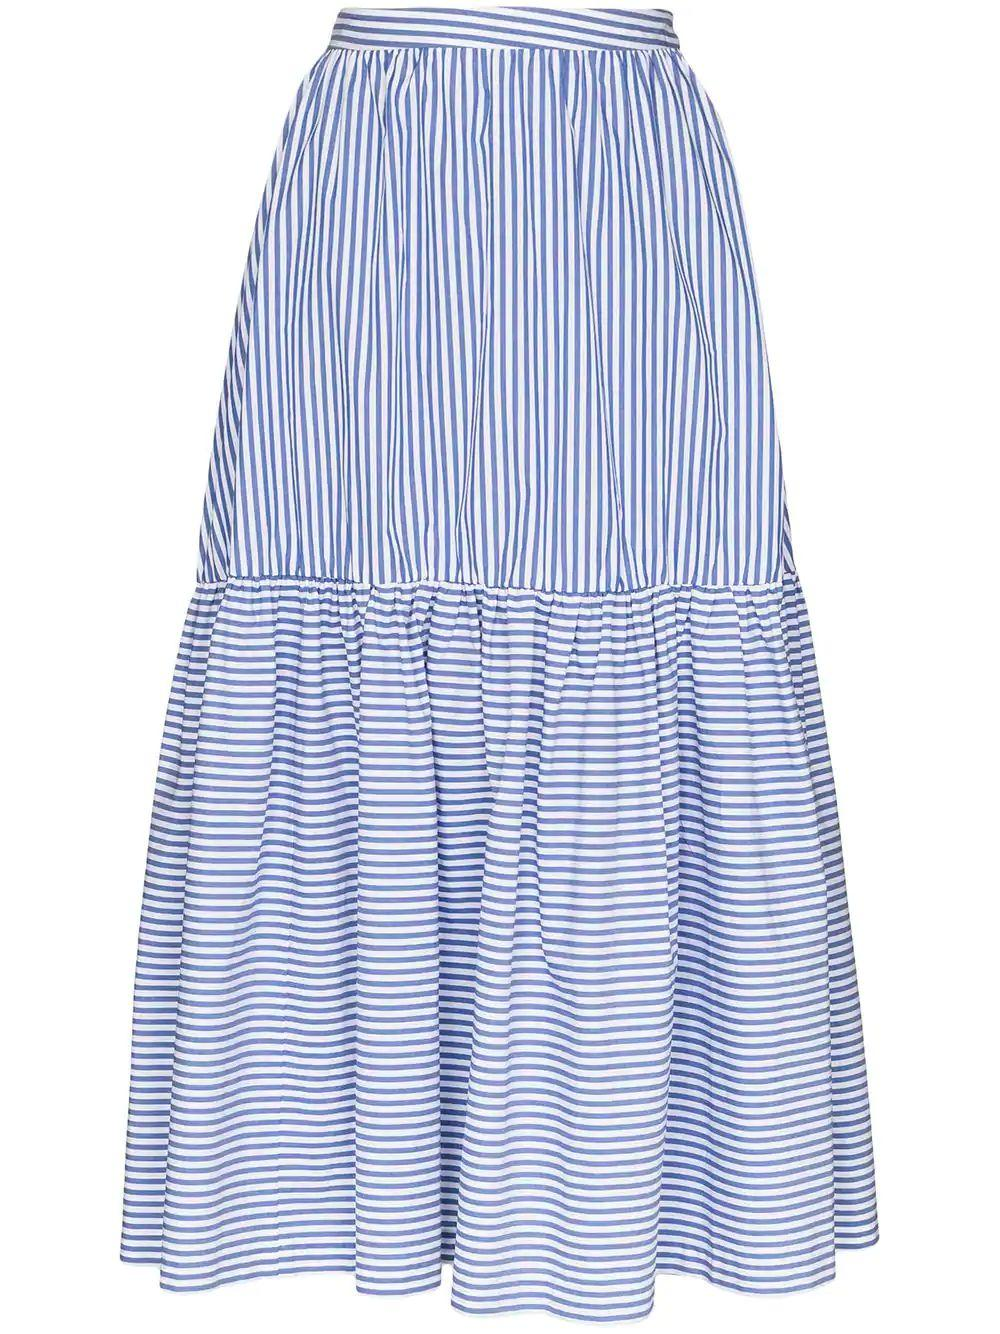 Orchid Striped Shirting Midi Skirt Item # 168-4049